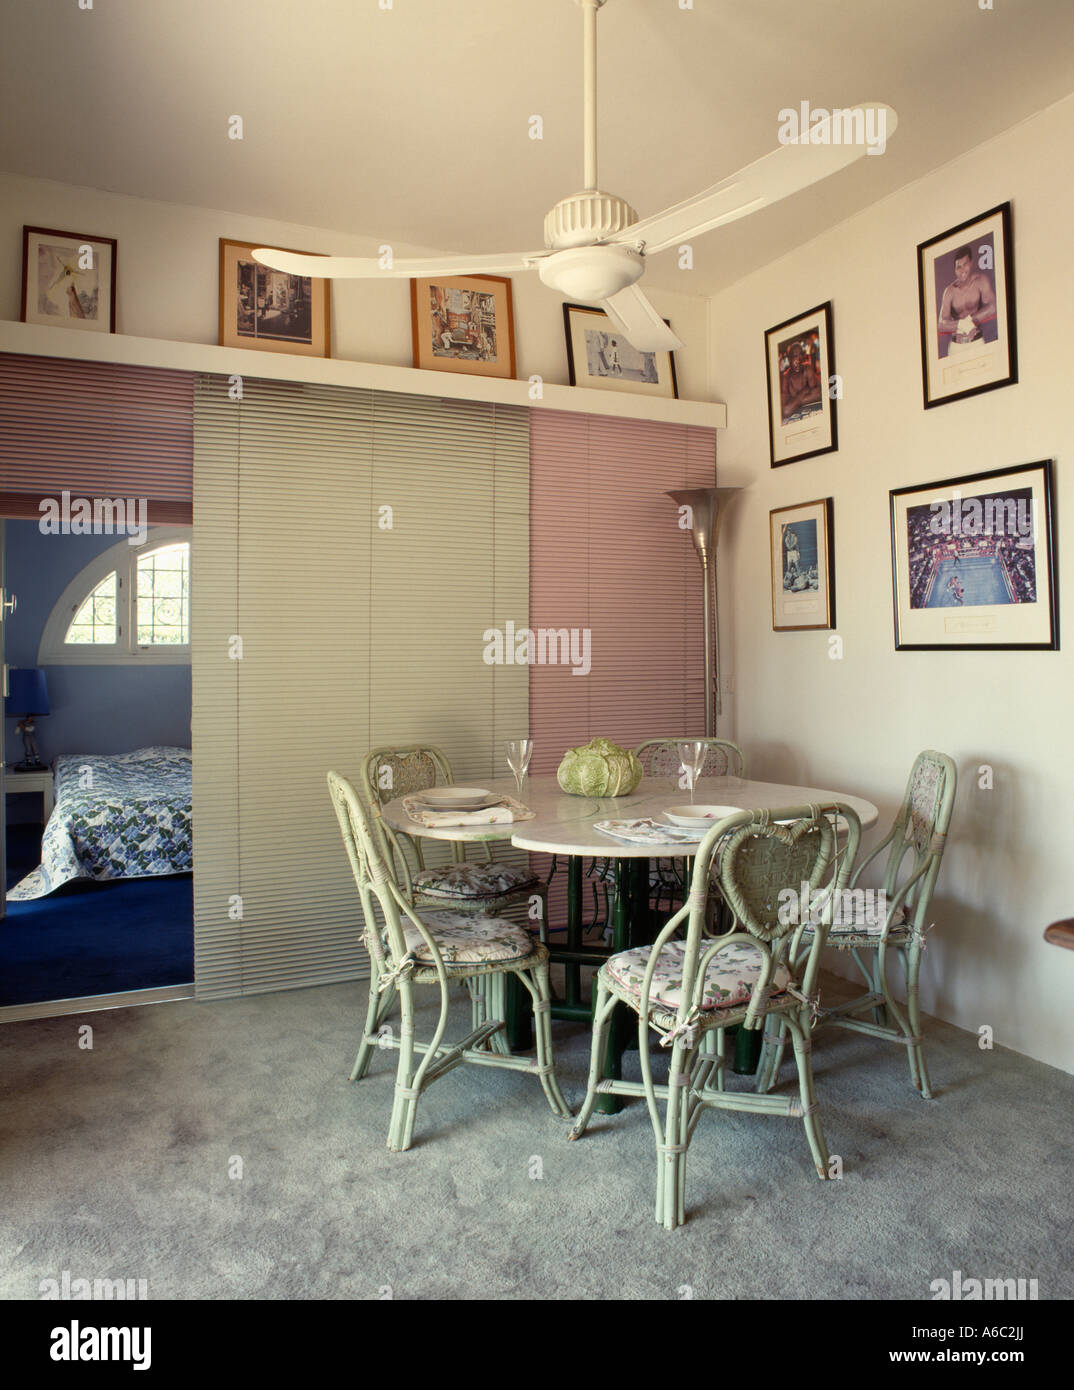 Ceiling Fan Above Circular Table In Dining Room With Pictures On Walls And Sliding Door To Bedroom